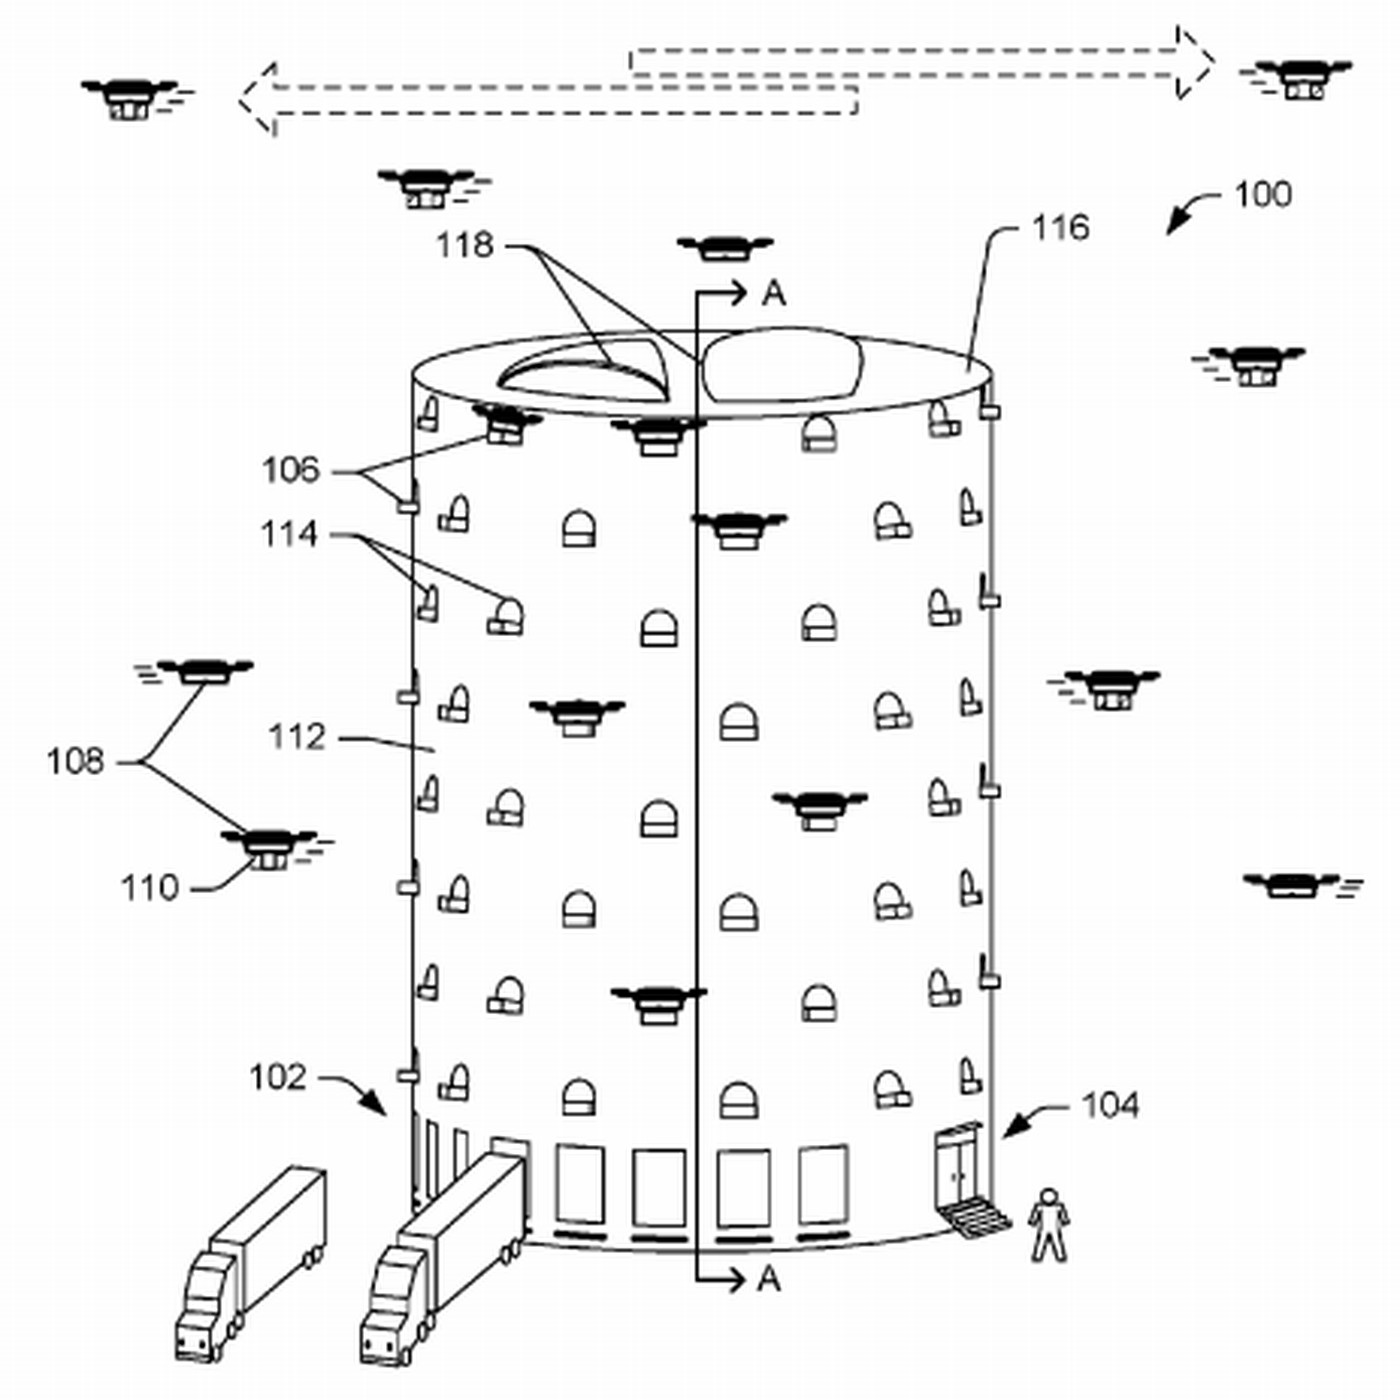 Amazons Idea For A Massive Drone Dock Looks Like Cross Between Beehive Phone Wiring Diagram And Spaceship Recode